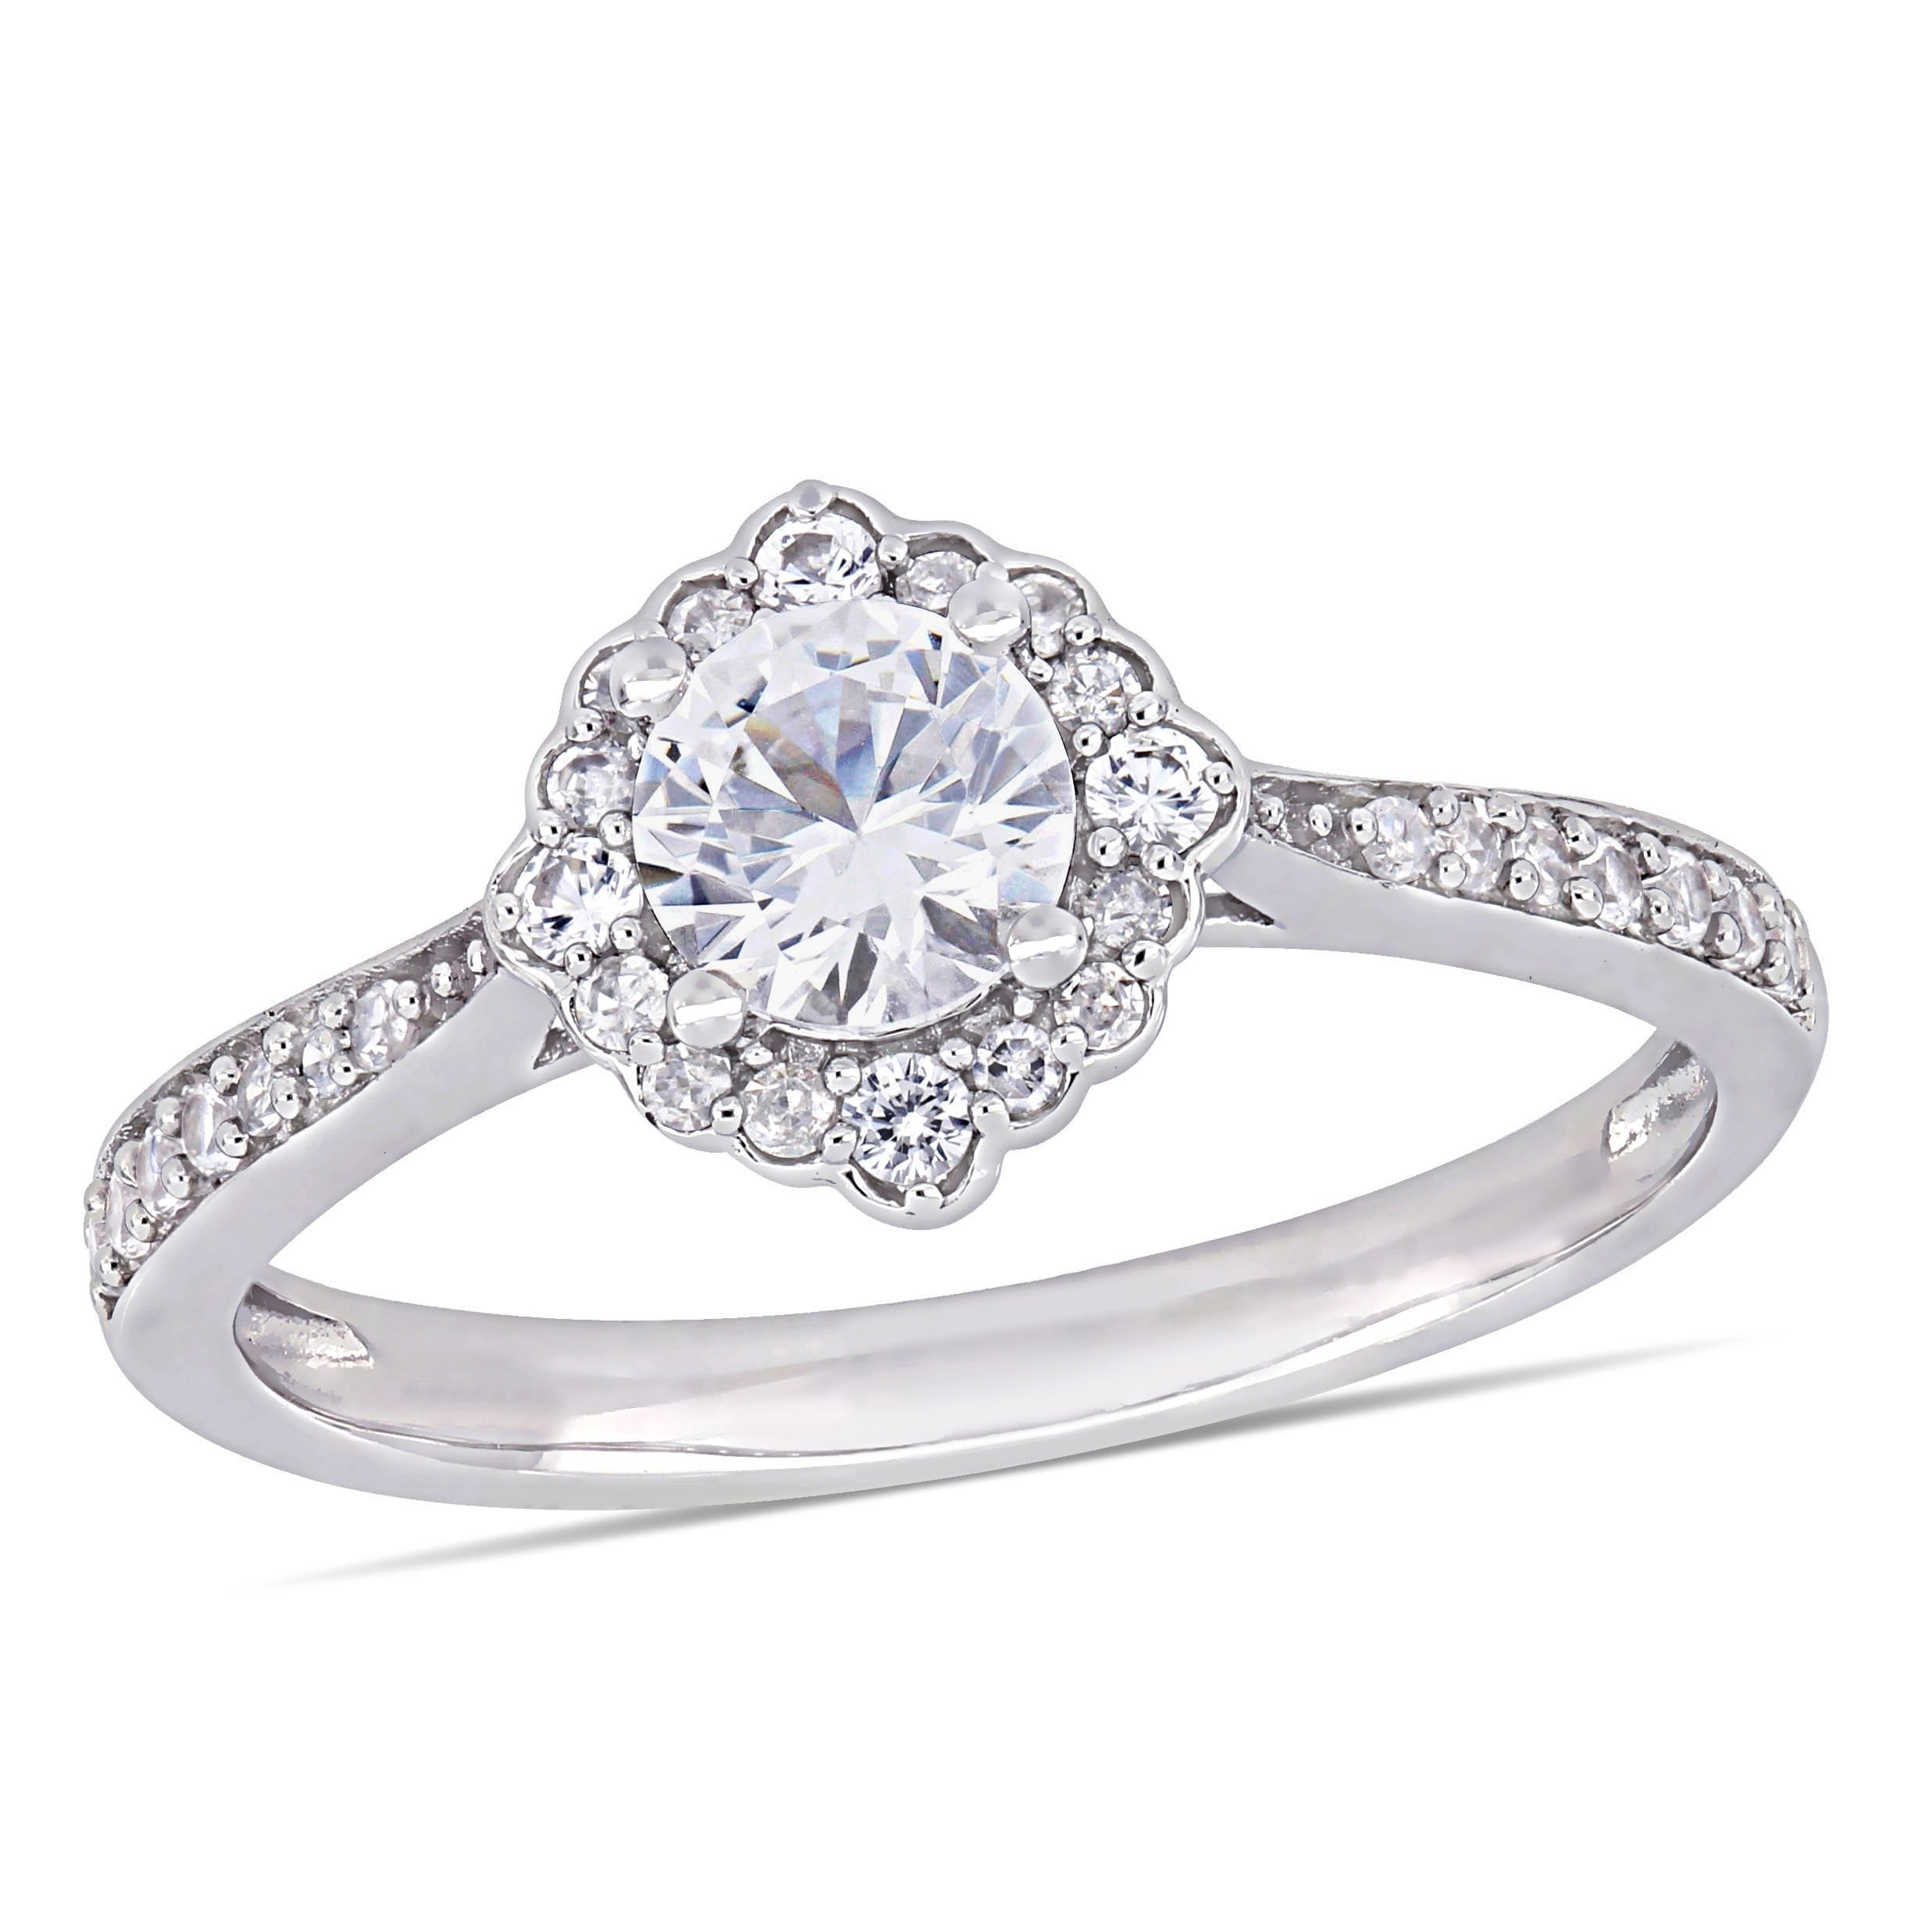 8591b58169cfc Miadora 10k White Gold Created White Sapphire & 1/10ct TDW Diamond  Engagement Ring